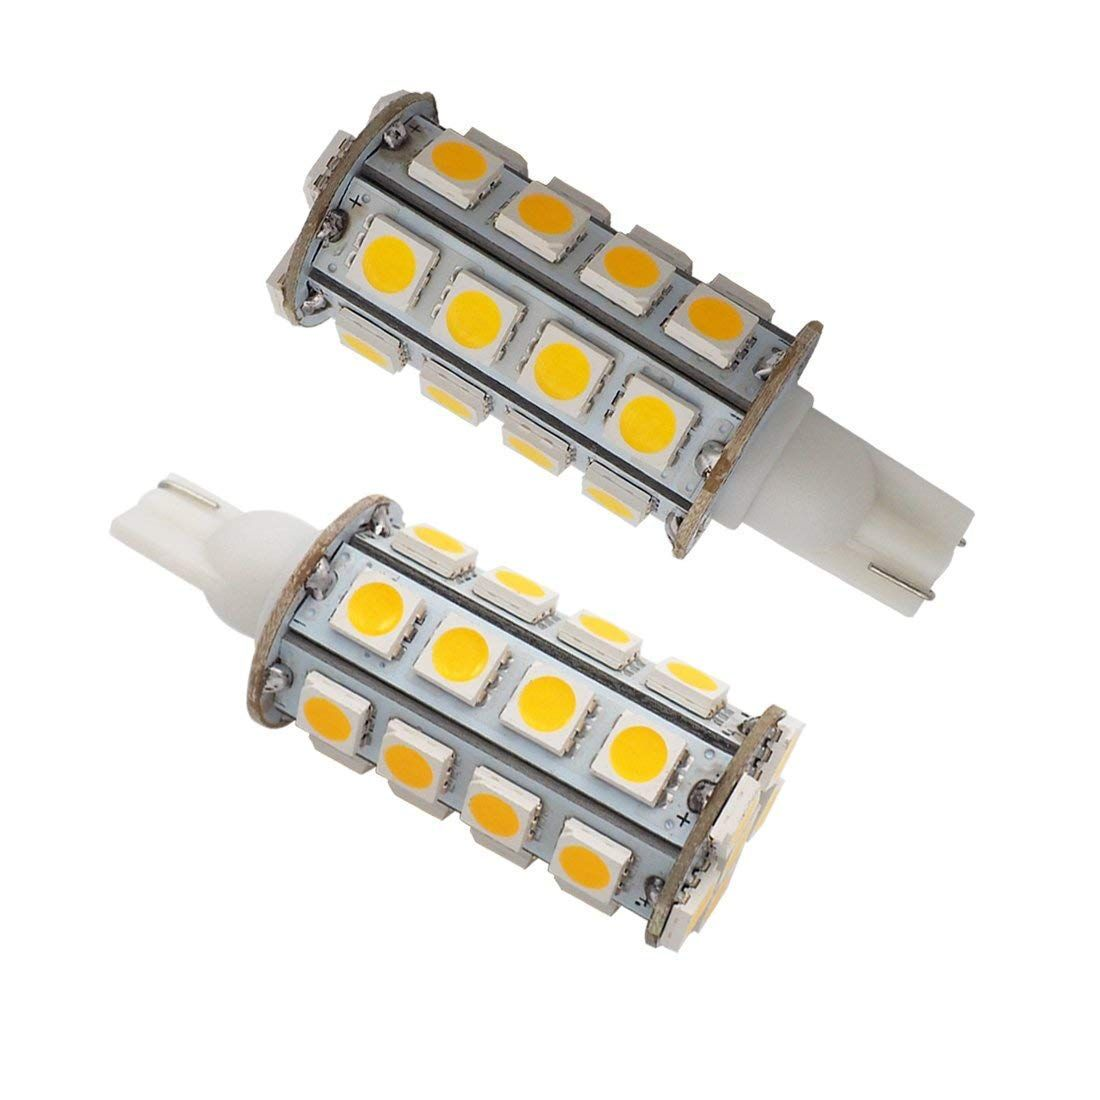 Grv T10 Wedge 921 194 305050 Smd Led Bulb Lamp Super Bright Warm White Ac Dc 12v24v Pack Of 2 Check Out Extra At The Image Web Link Led Bulb Bulb Light Bulb